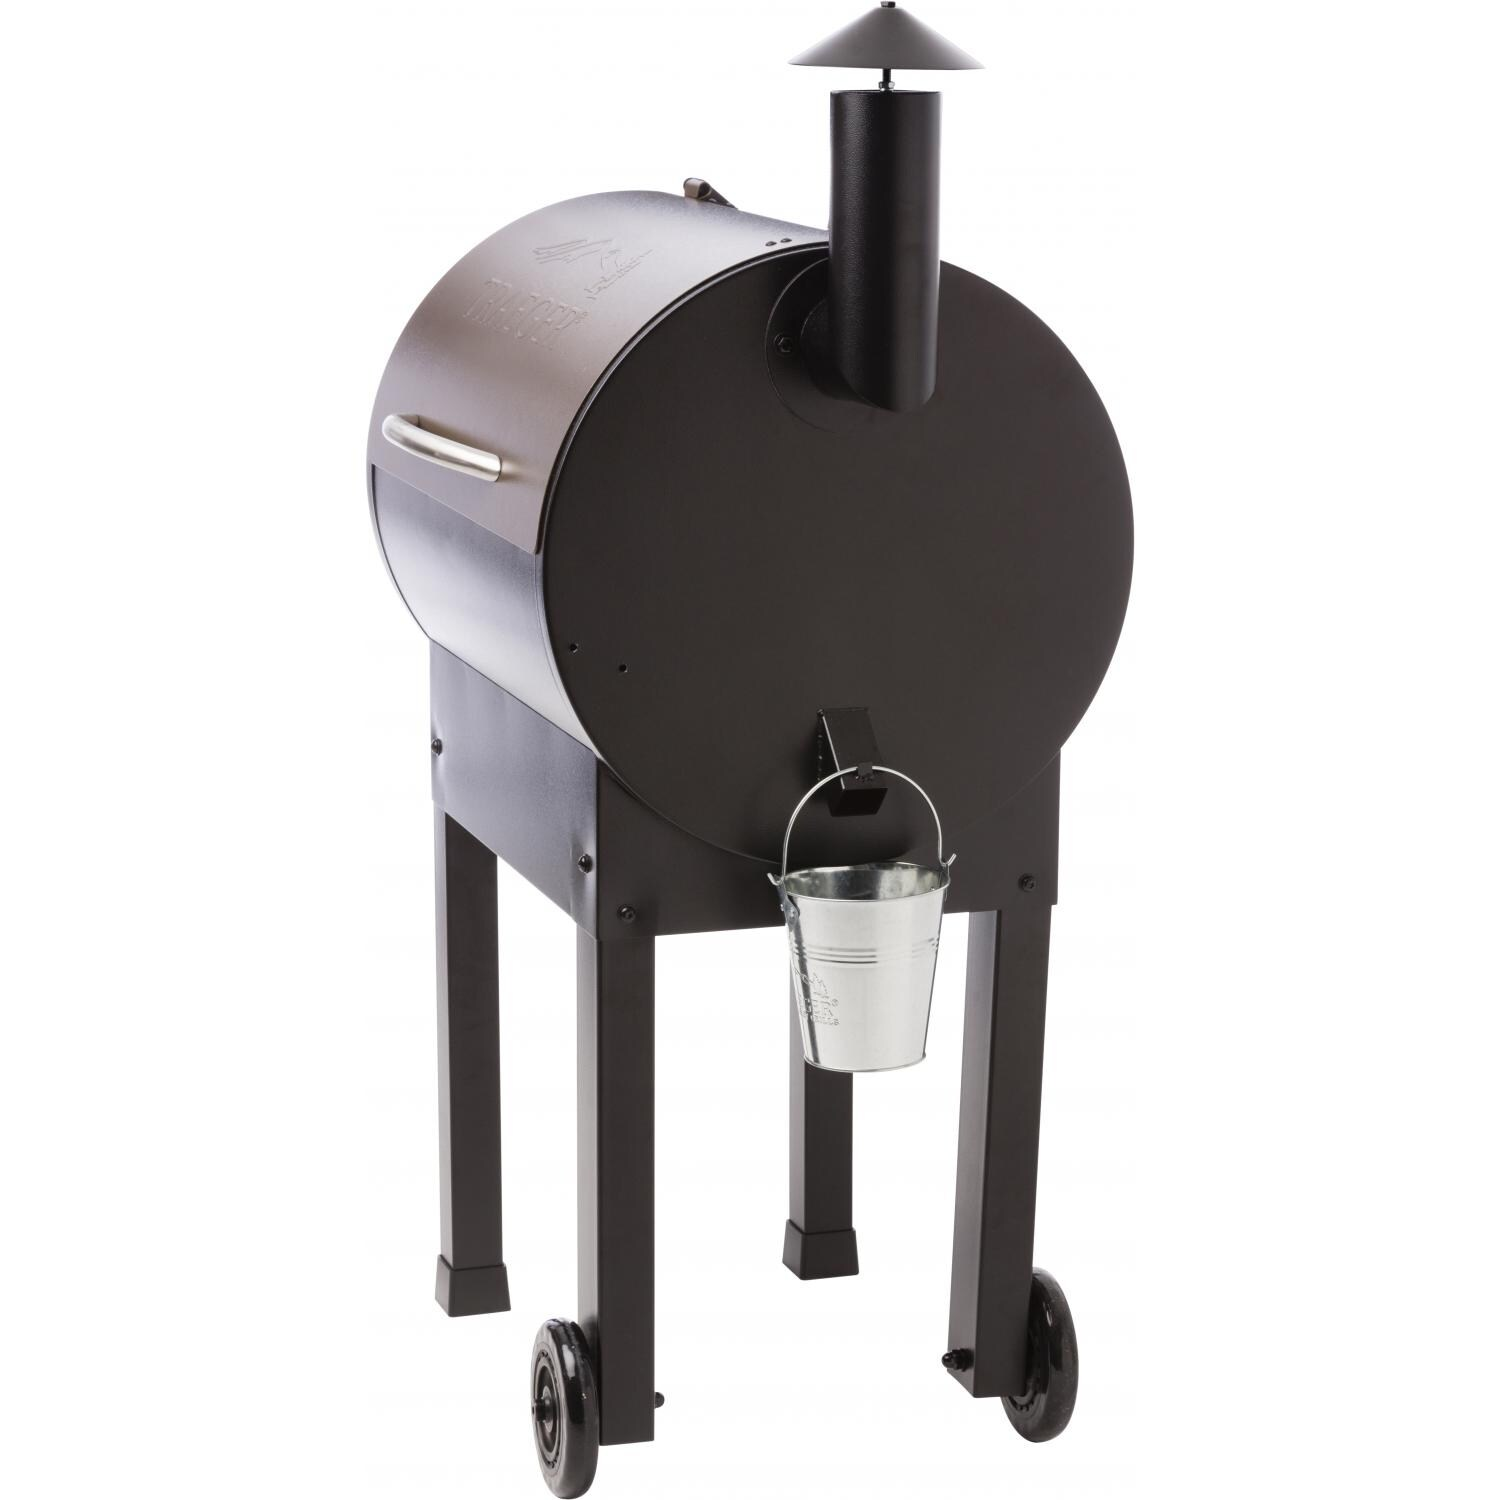 7884ac3834333797846688e1f9515975?i10c=img.resize.fit(width 1000height 1000bordercolor '0xffffff') traeger lil tex elite 22 pellet grill on cart tfb42lzb bbq guys 2016 Texas Elite 34 Traeger at crackthecode.co